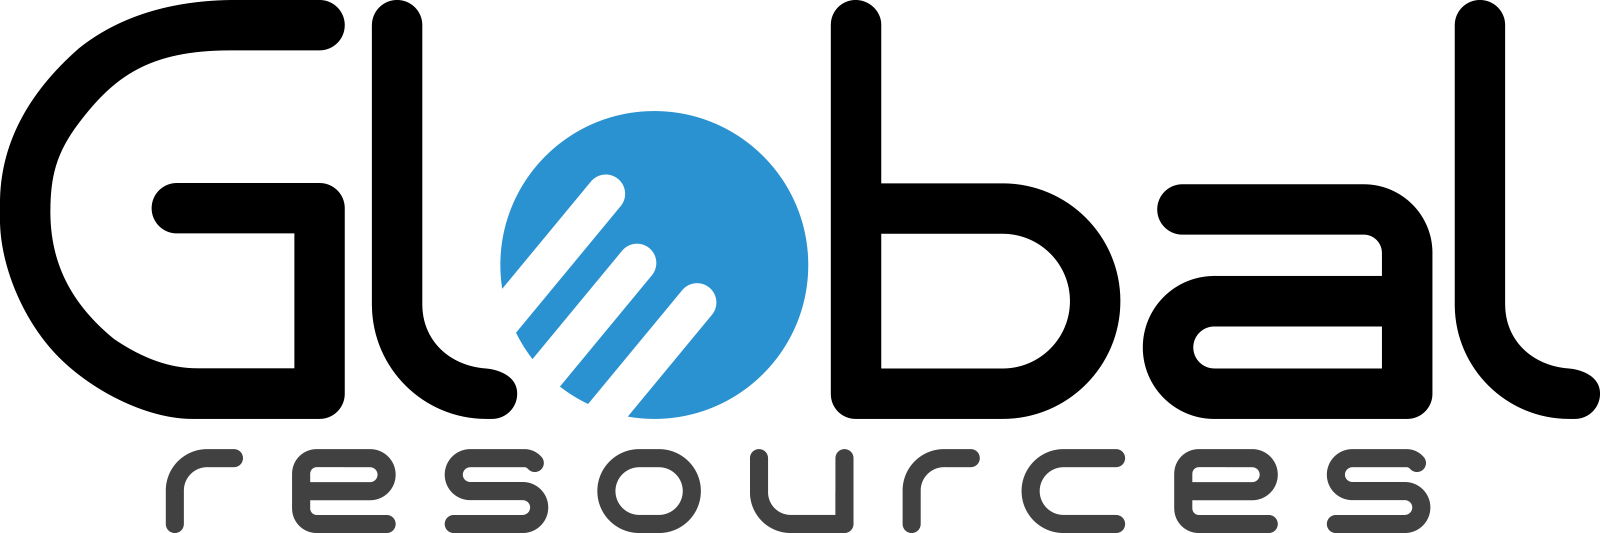 Global-Resources-1-logo